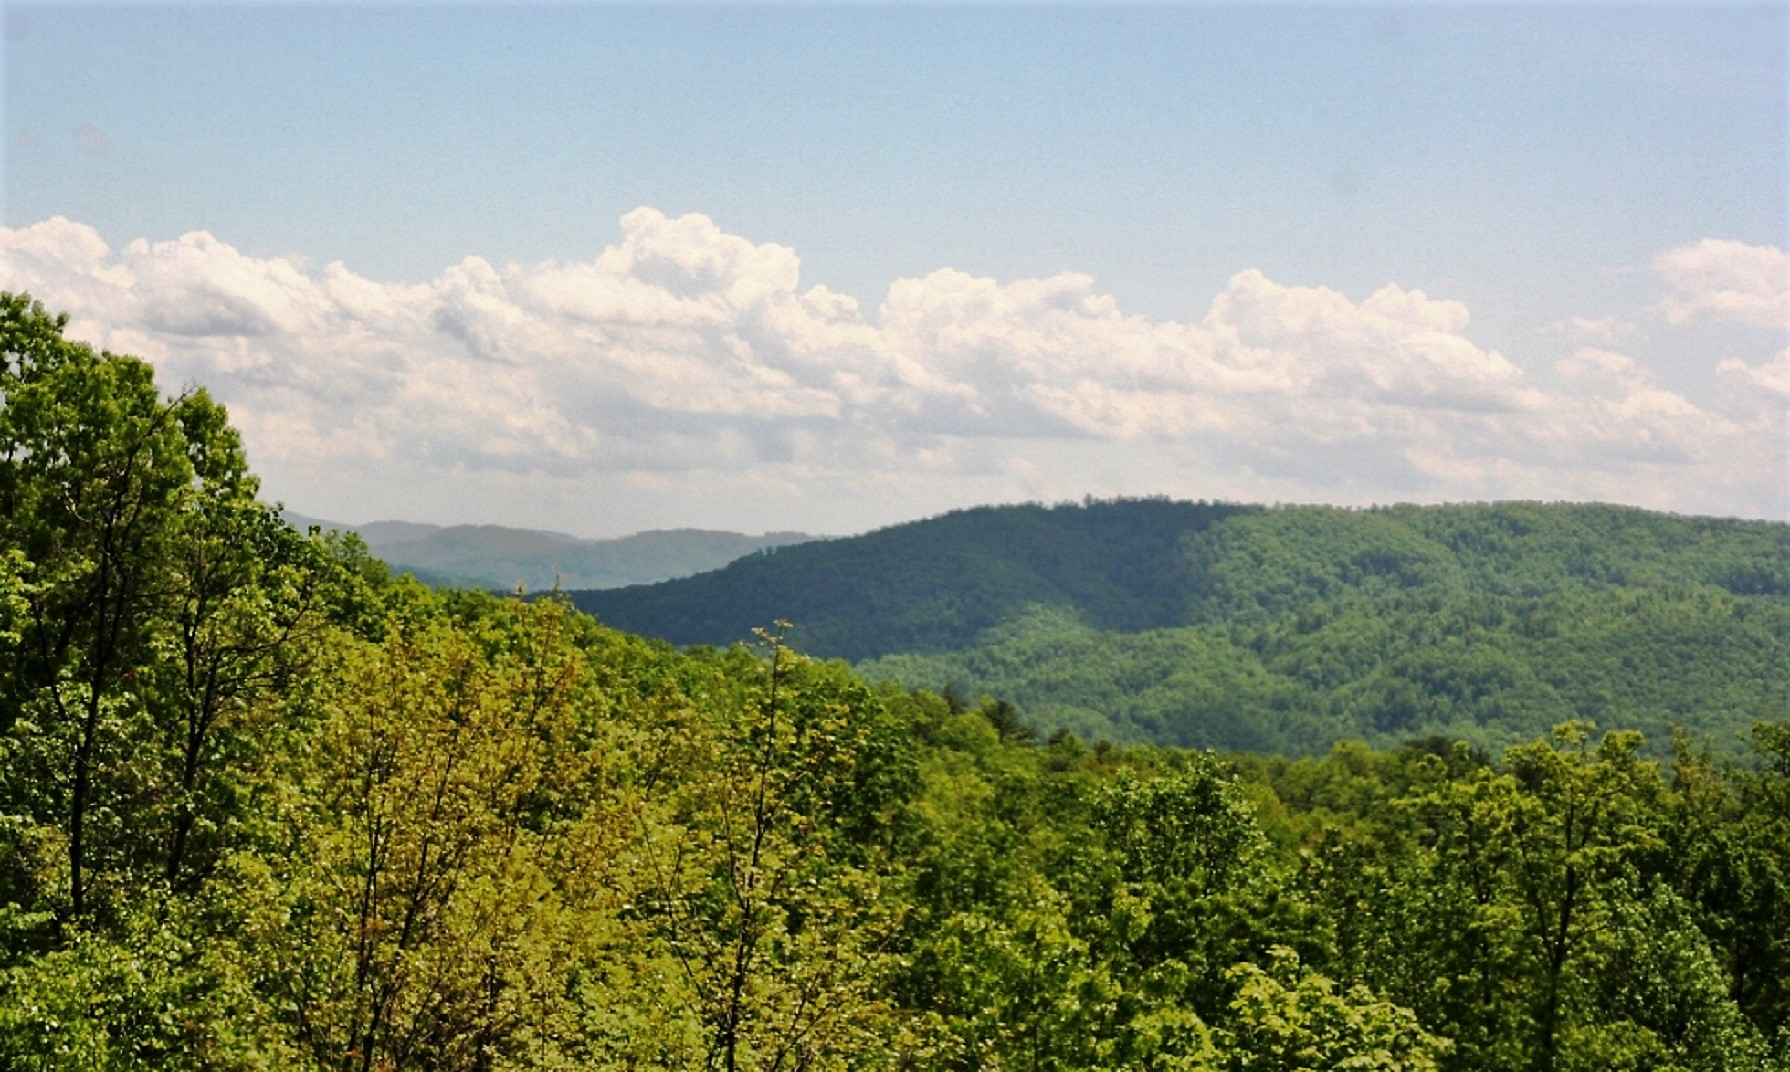 LEATHERWOOD MOUNTAIN LOT 40 LONG RANGE VIEWS NOW AVAILABLE